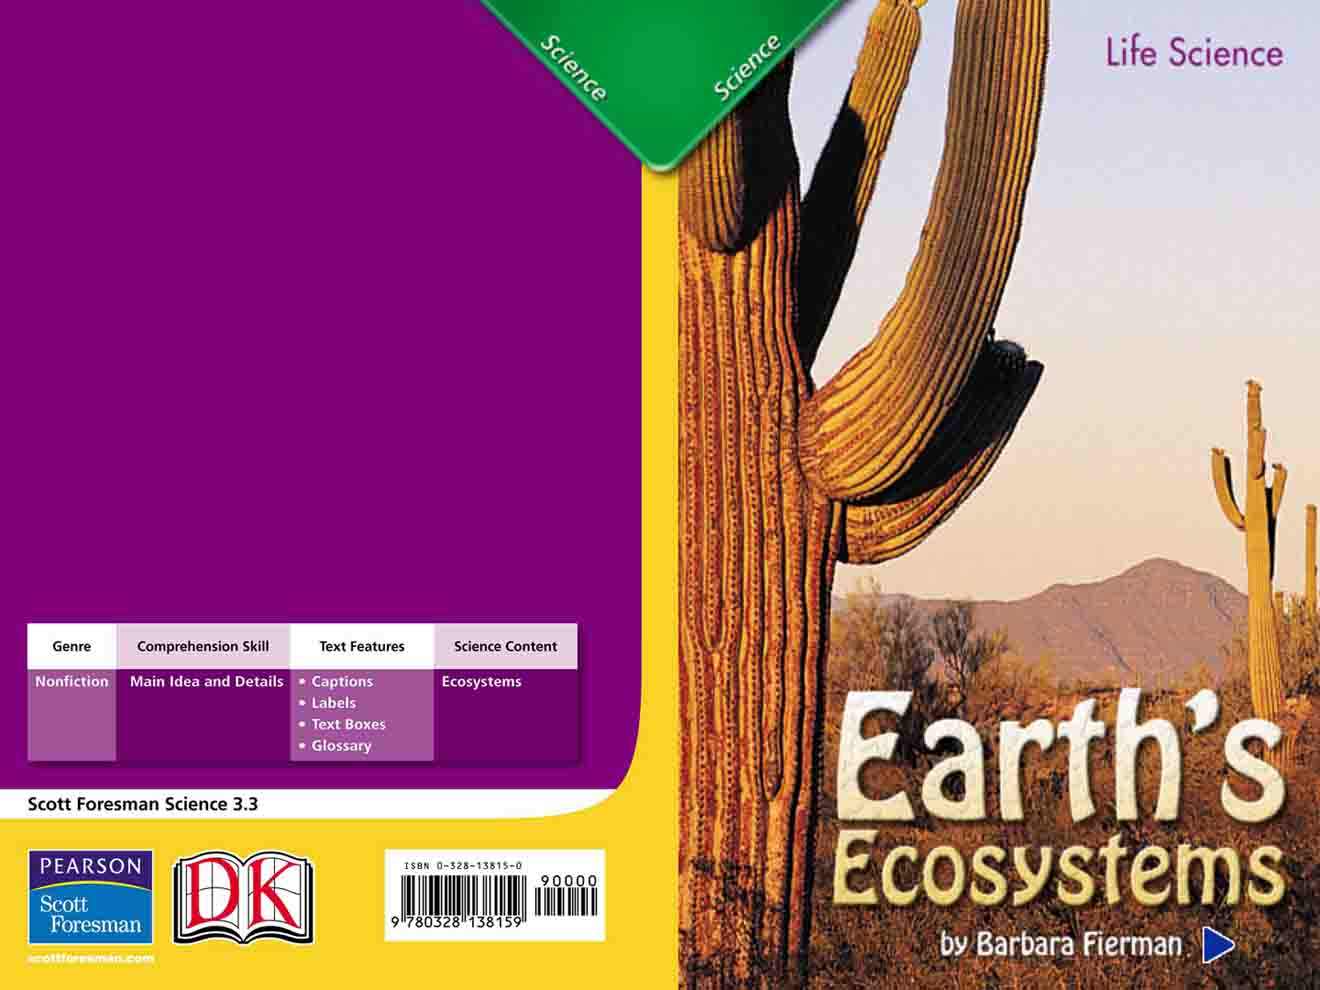 SCIENCE-EARTH S ECOSYSTEMS